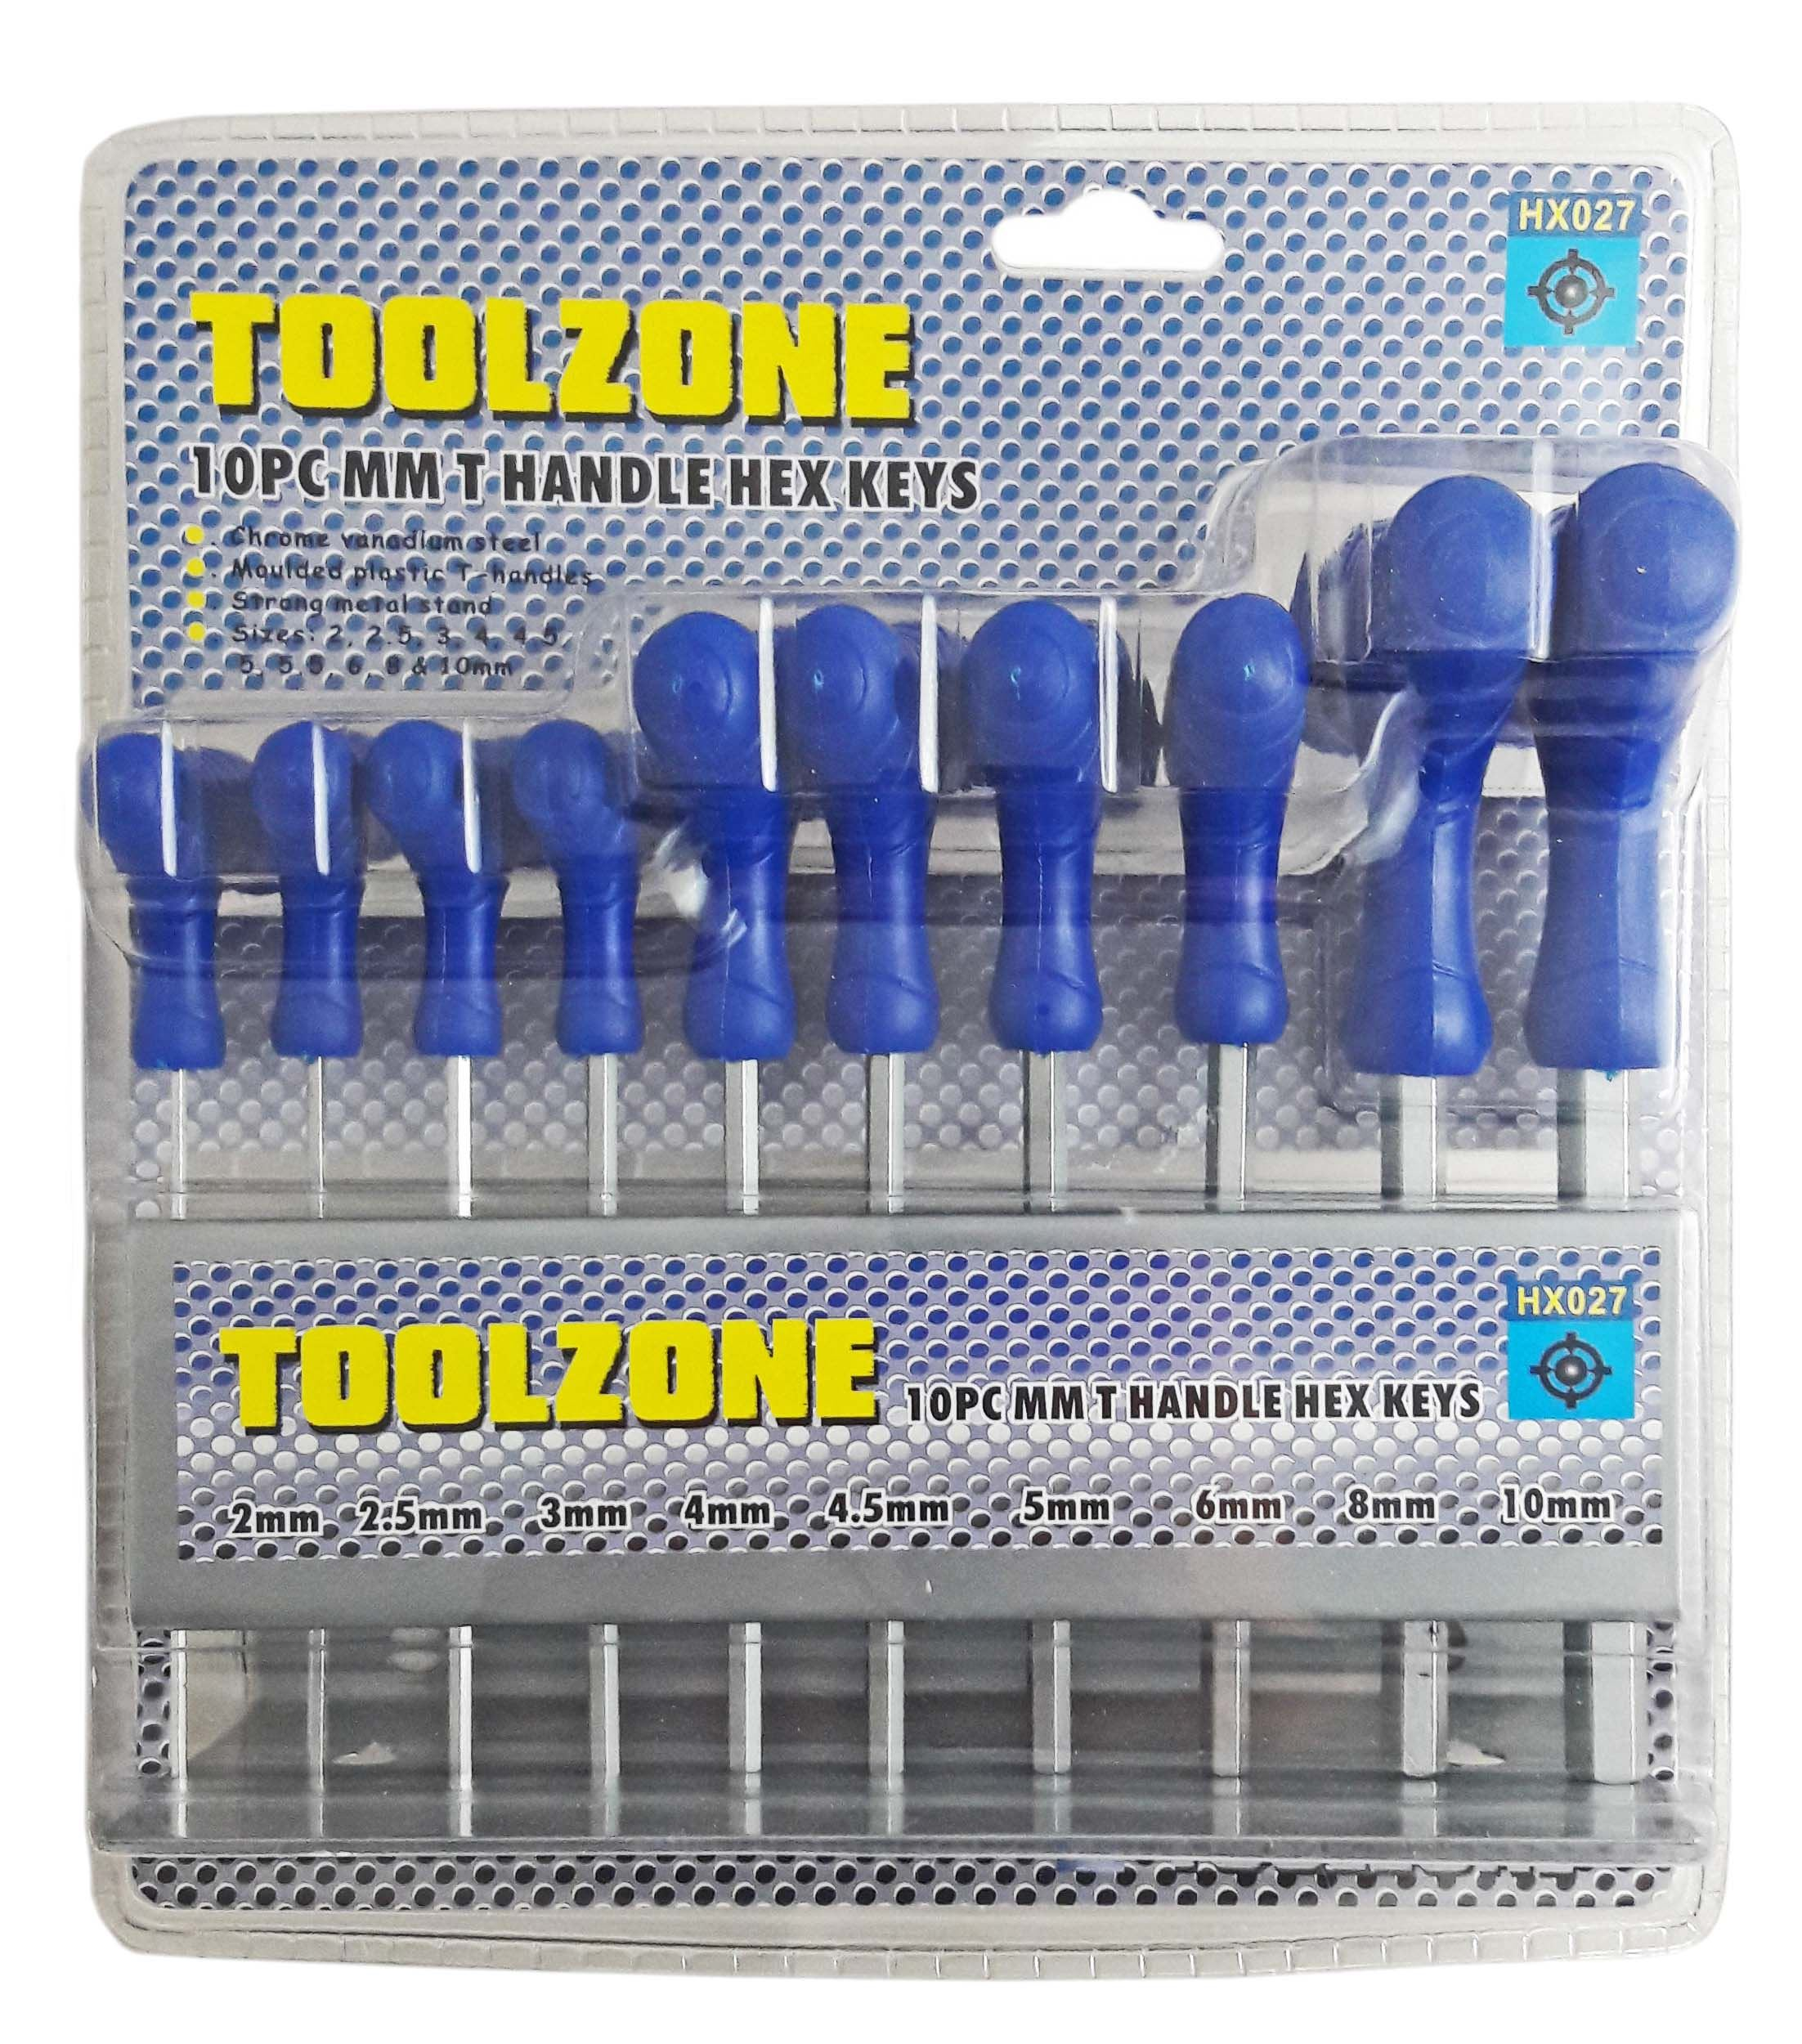 Toolzone 10Pc T Handle Hex Keys Metric